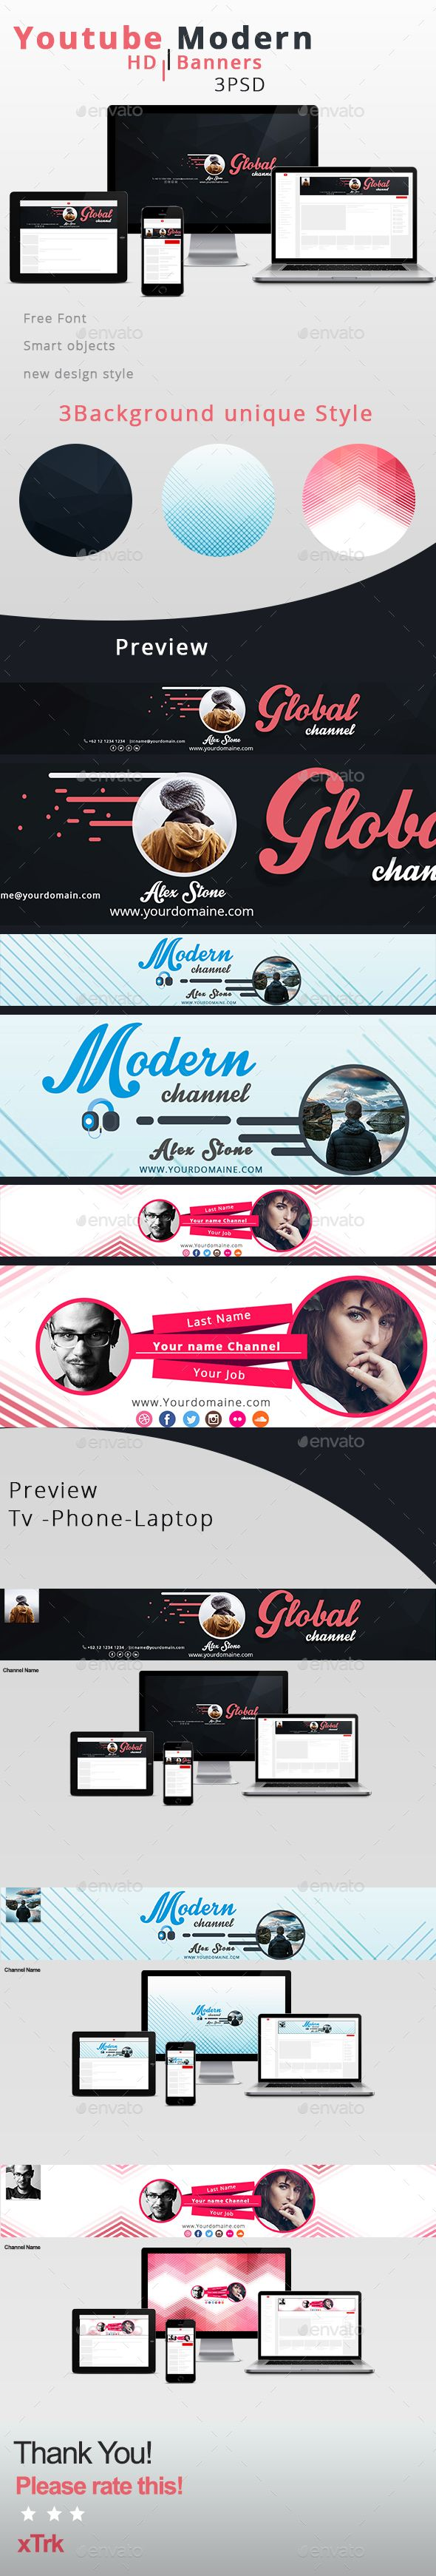 Modern Youtube Channel Template Youtube And Modern - Youtube ad template